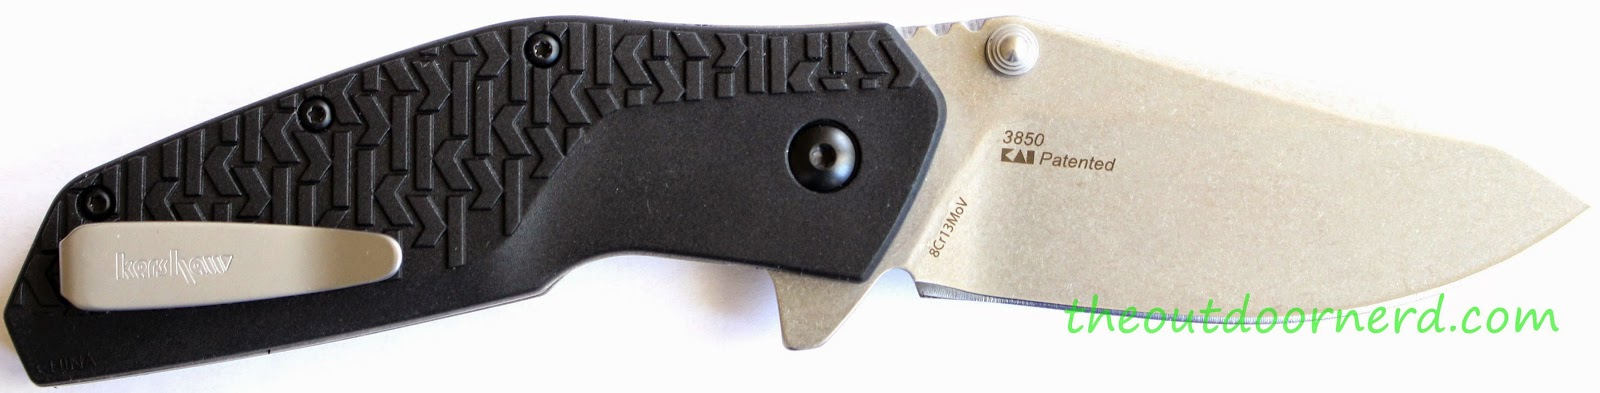 Kershaw Swerve EDC Pocket Knife: Product View 4